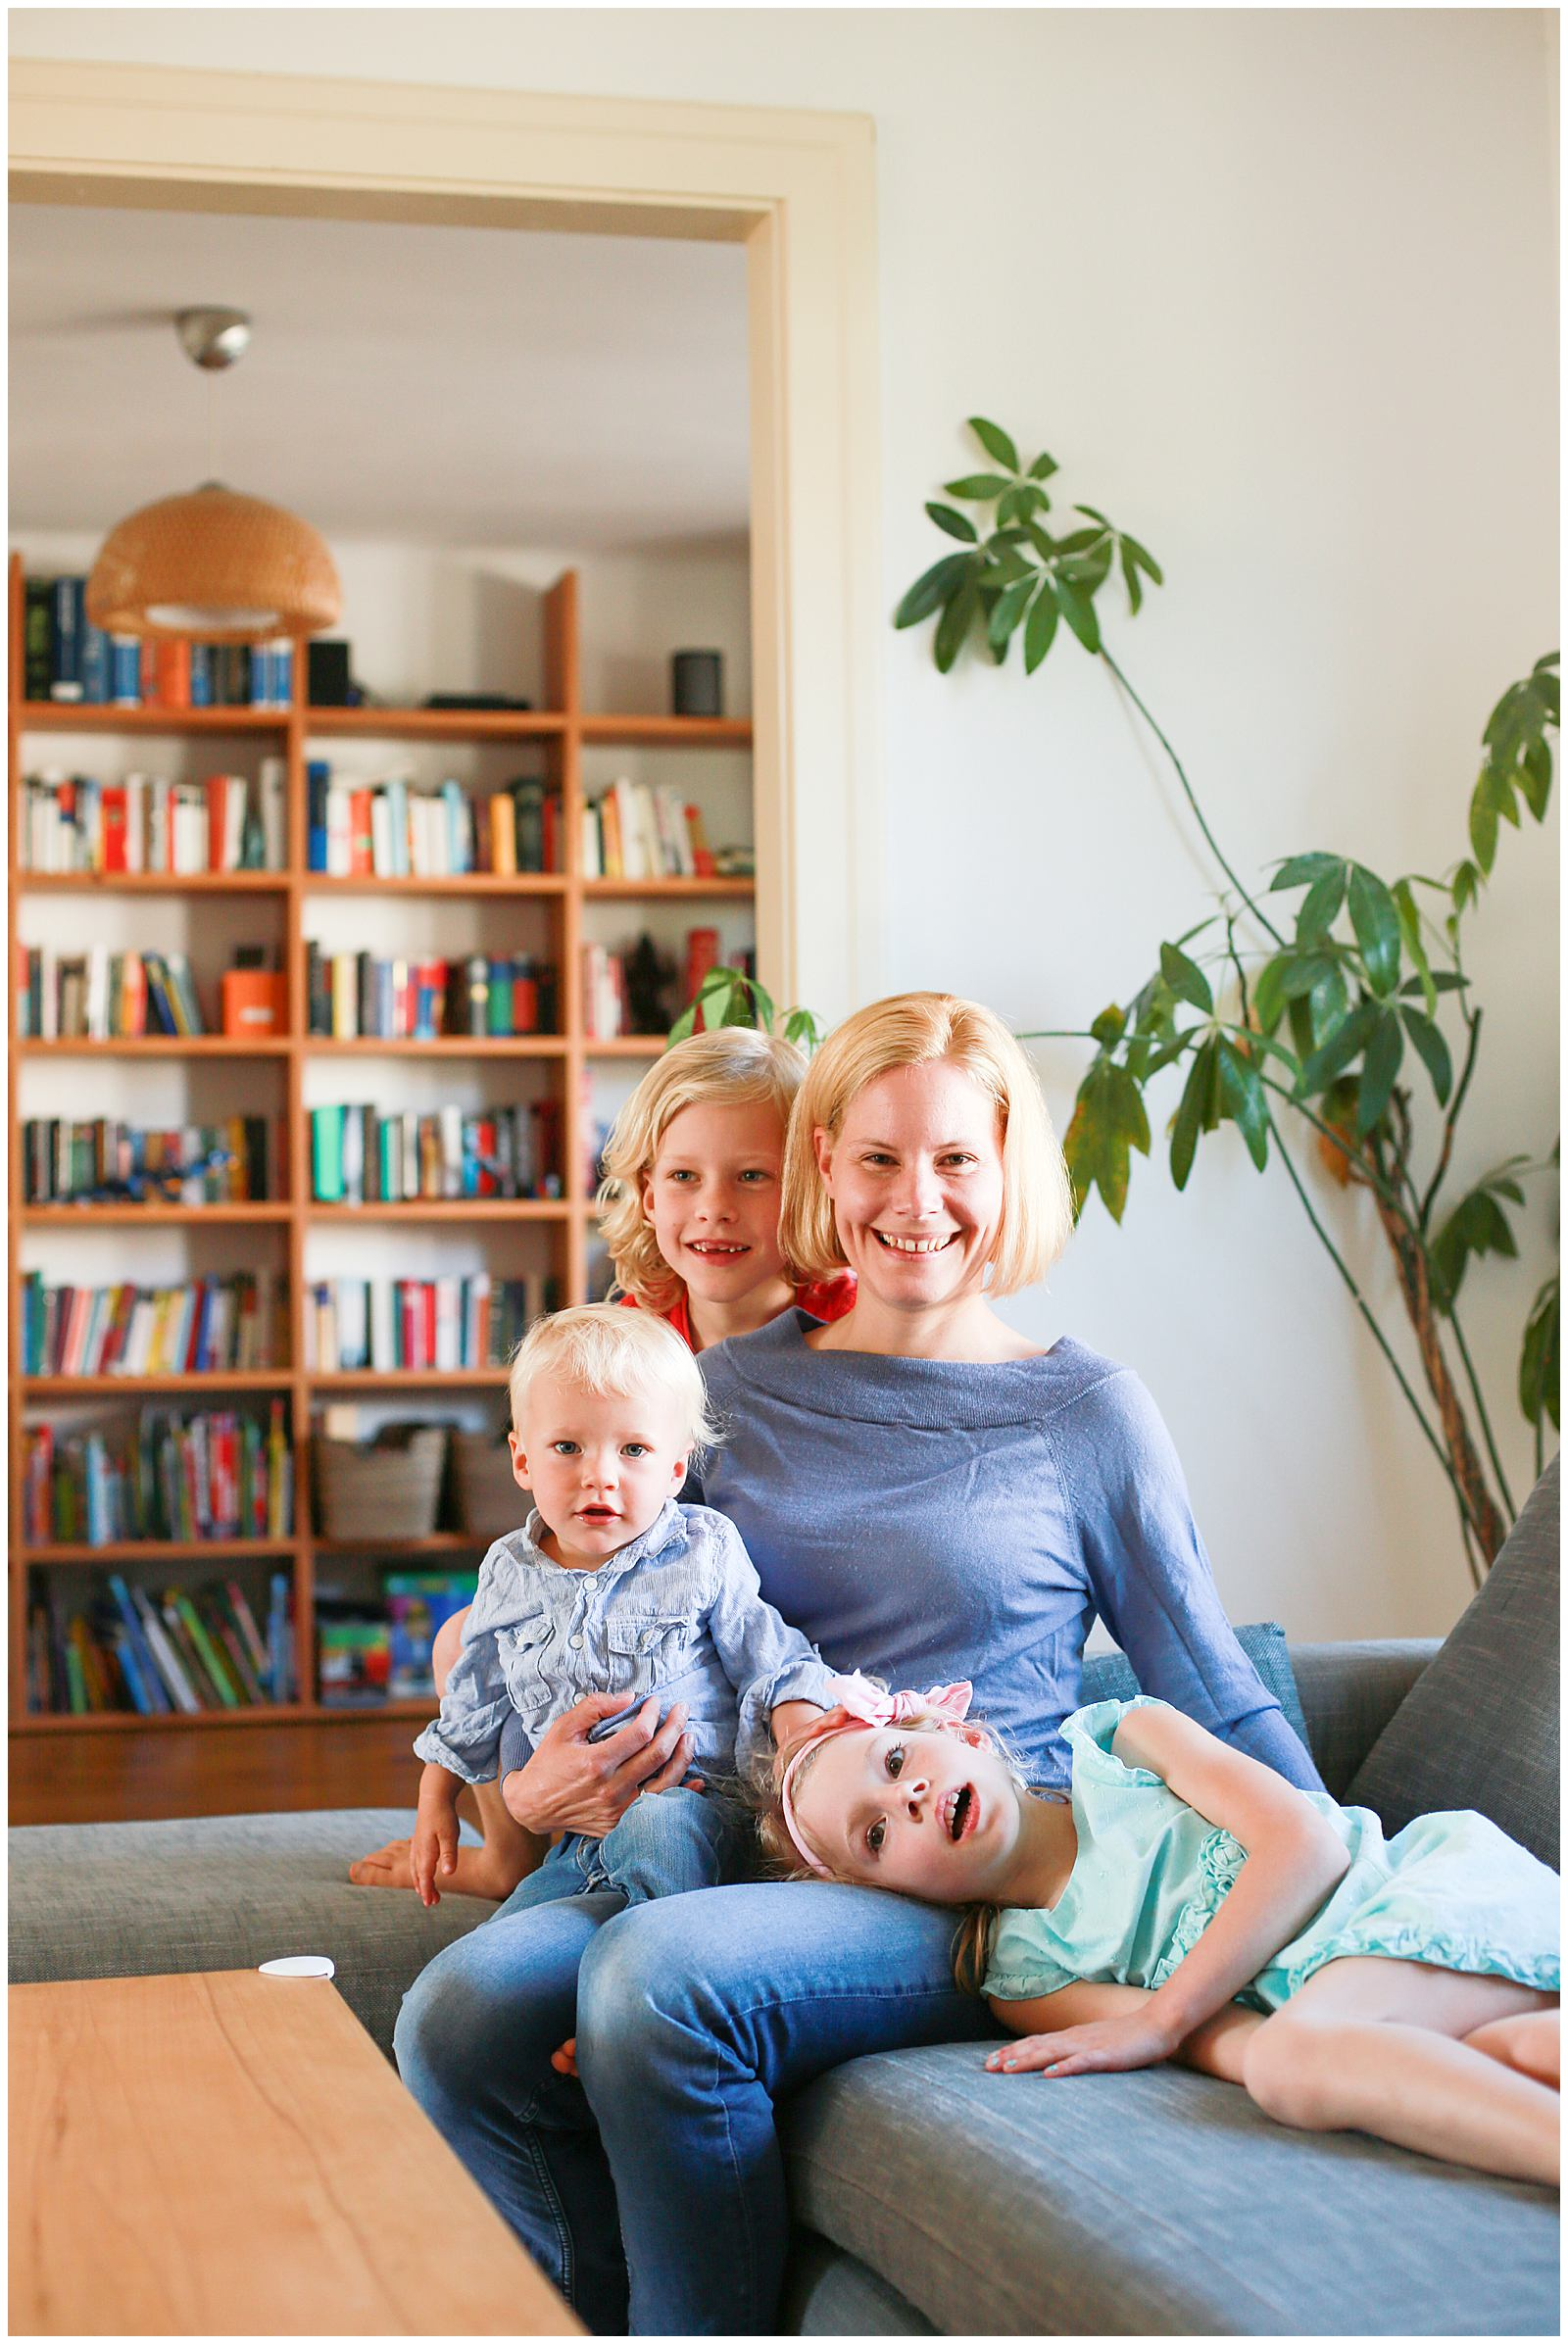 lifestyle family photos at home in living room in France